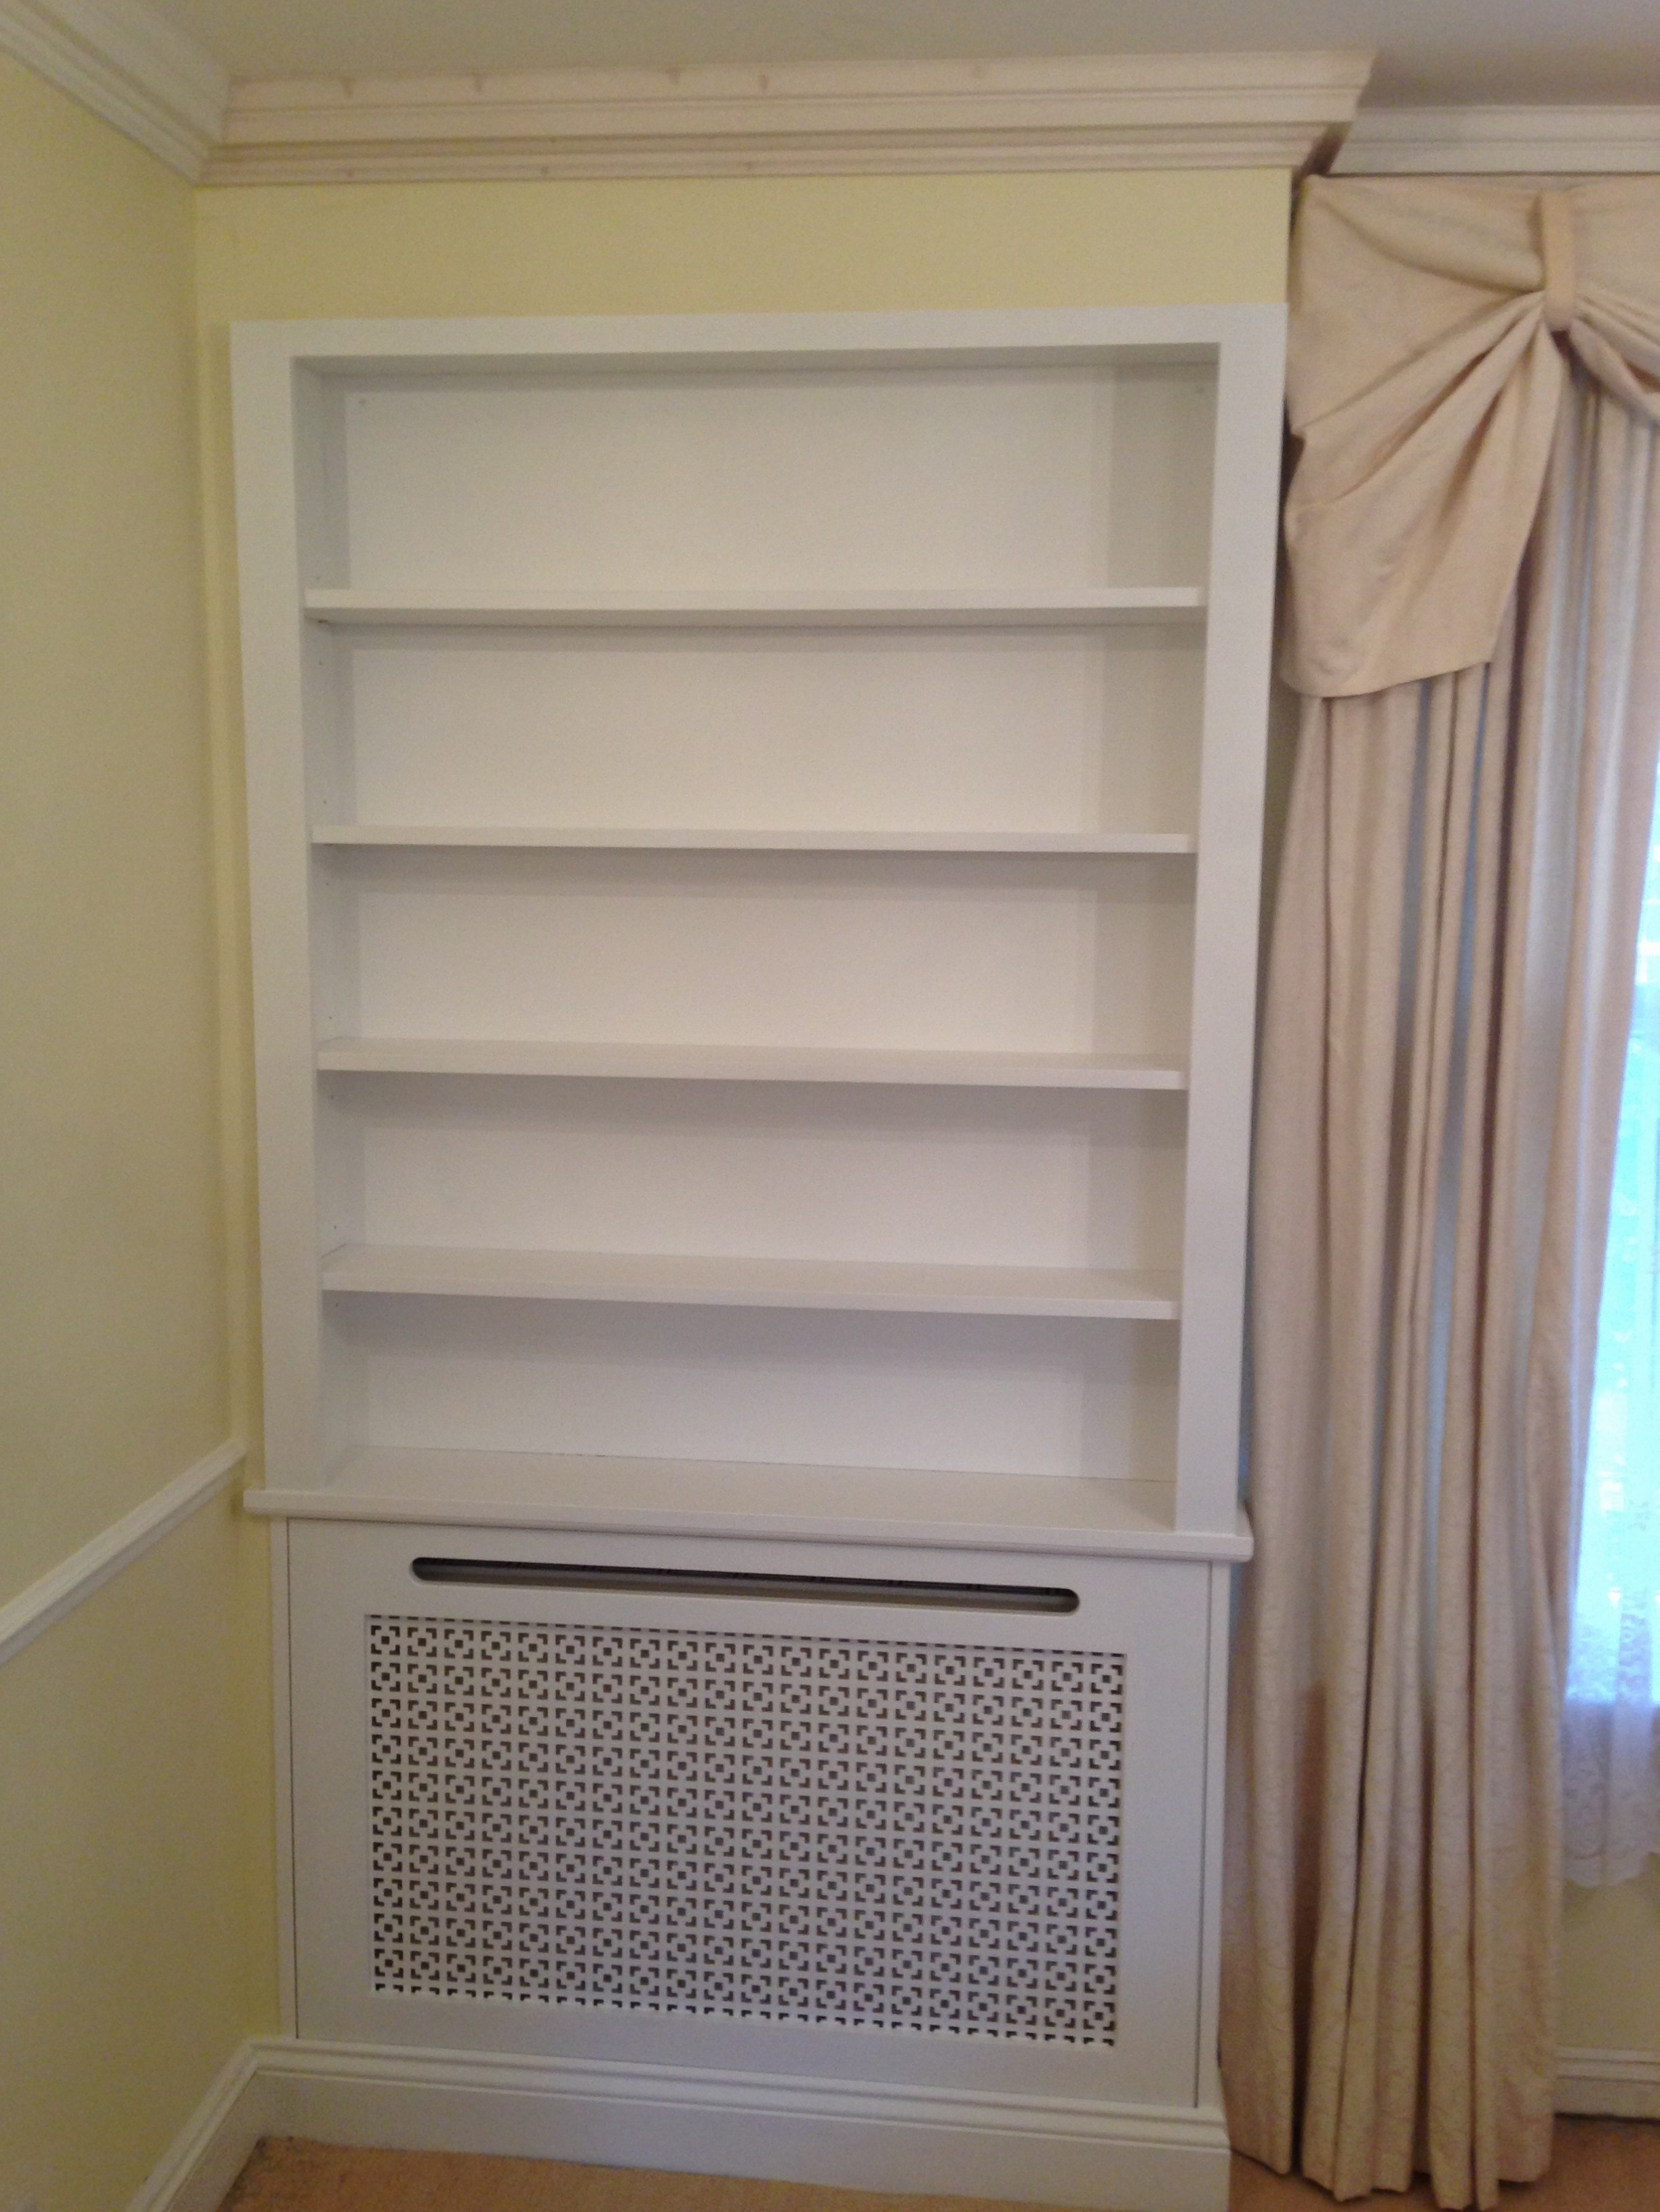 2017 Radiator Cover Bookcase – Harrow Builders And Bespoke Joinery – Lj Regarding Radiator Covers And Bookcases (View 1 of 15)